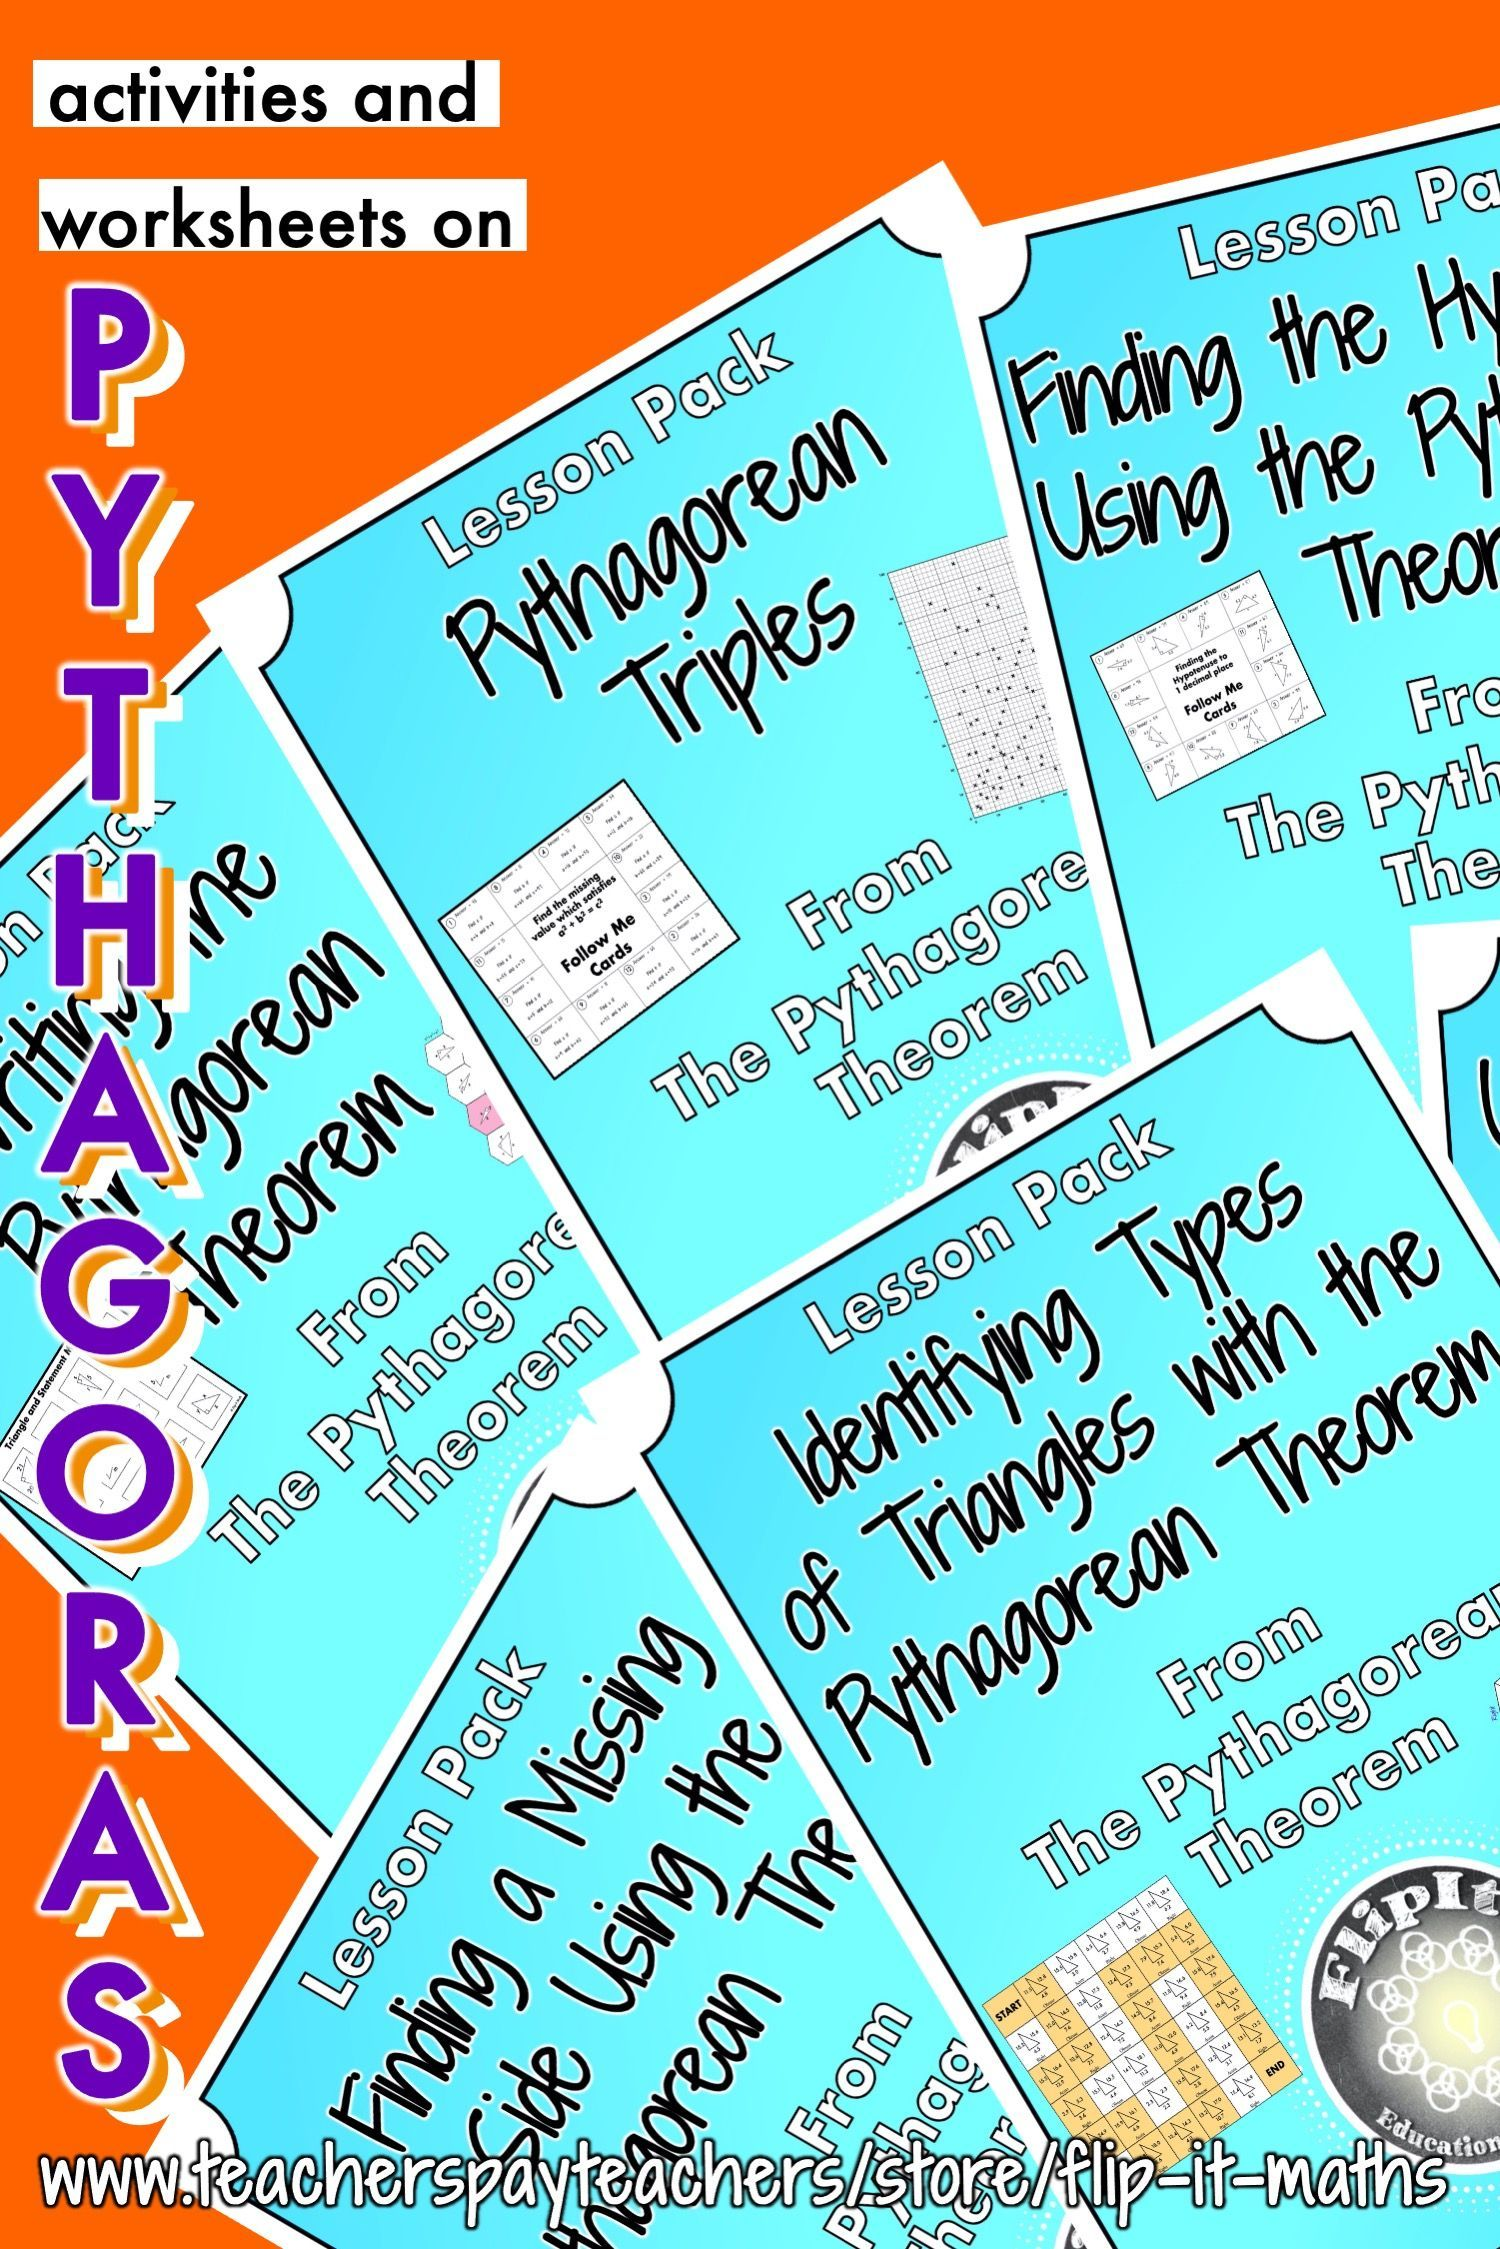 The Pythagorean Theorem Topic Bundle